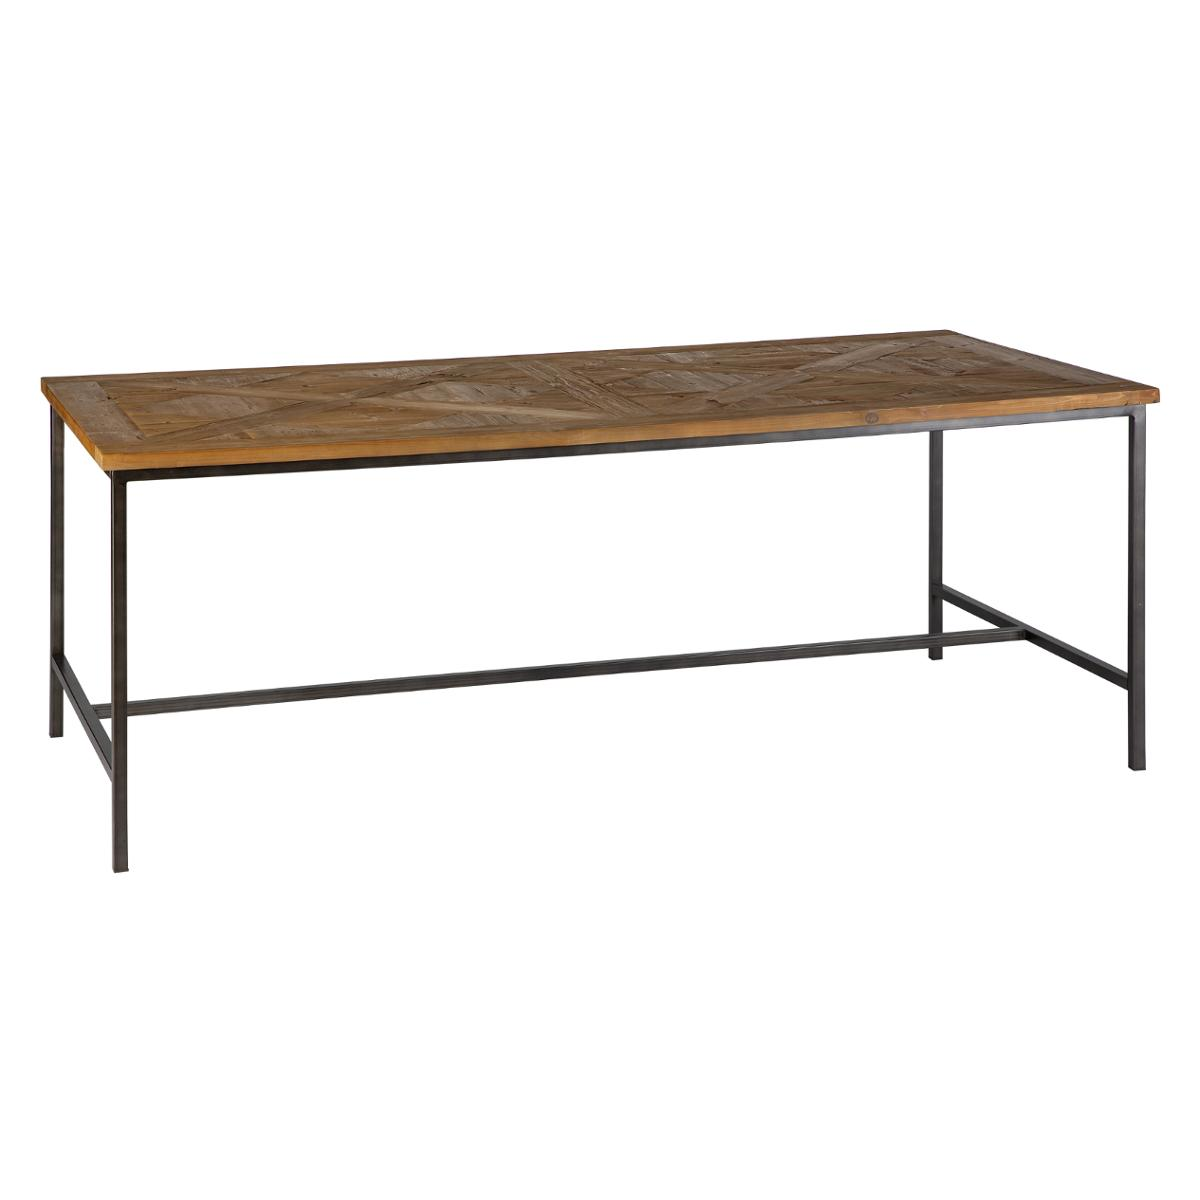 nos envies deco Table Diner 200 x 100 cm Corte - Atmosphera